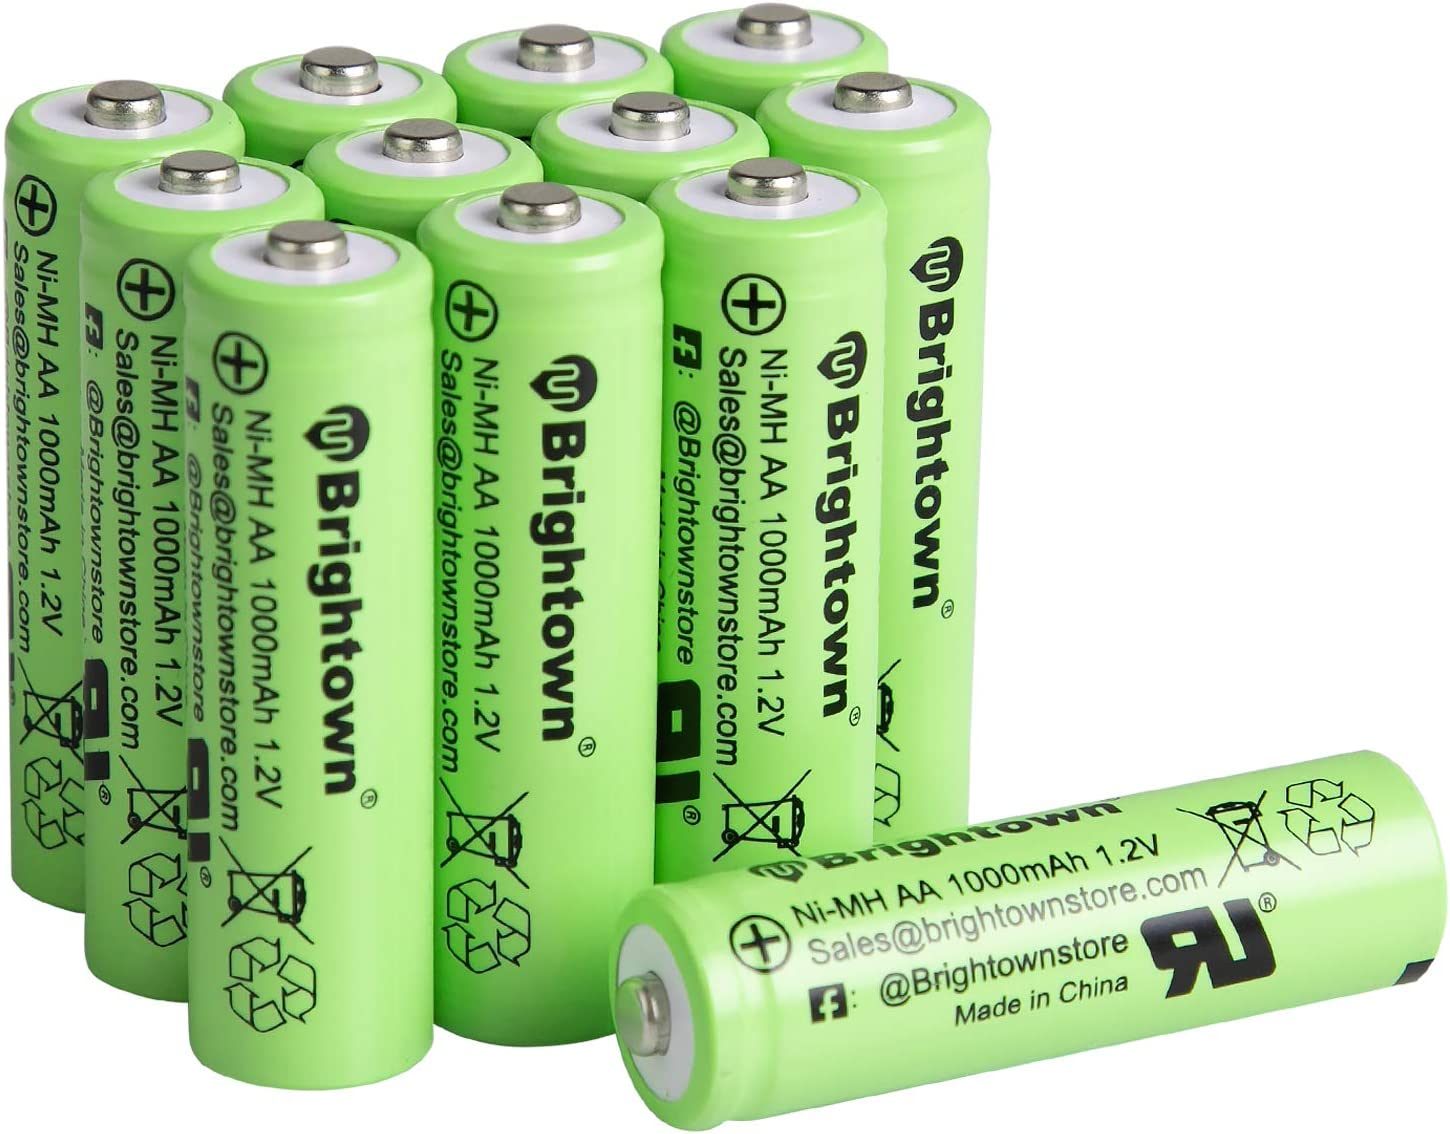 Brightown – Ni-MH AA - Best Rechargeable Batteries